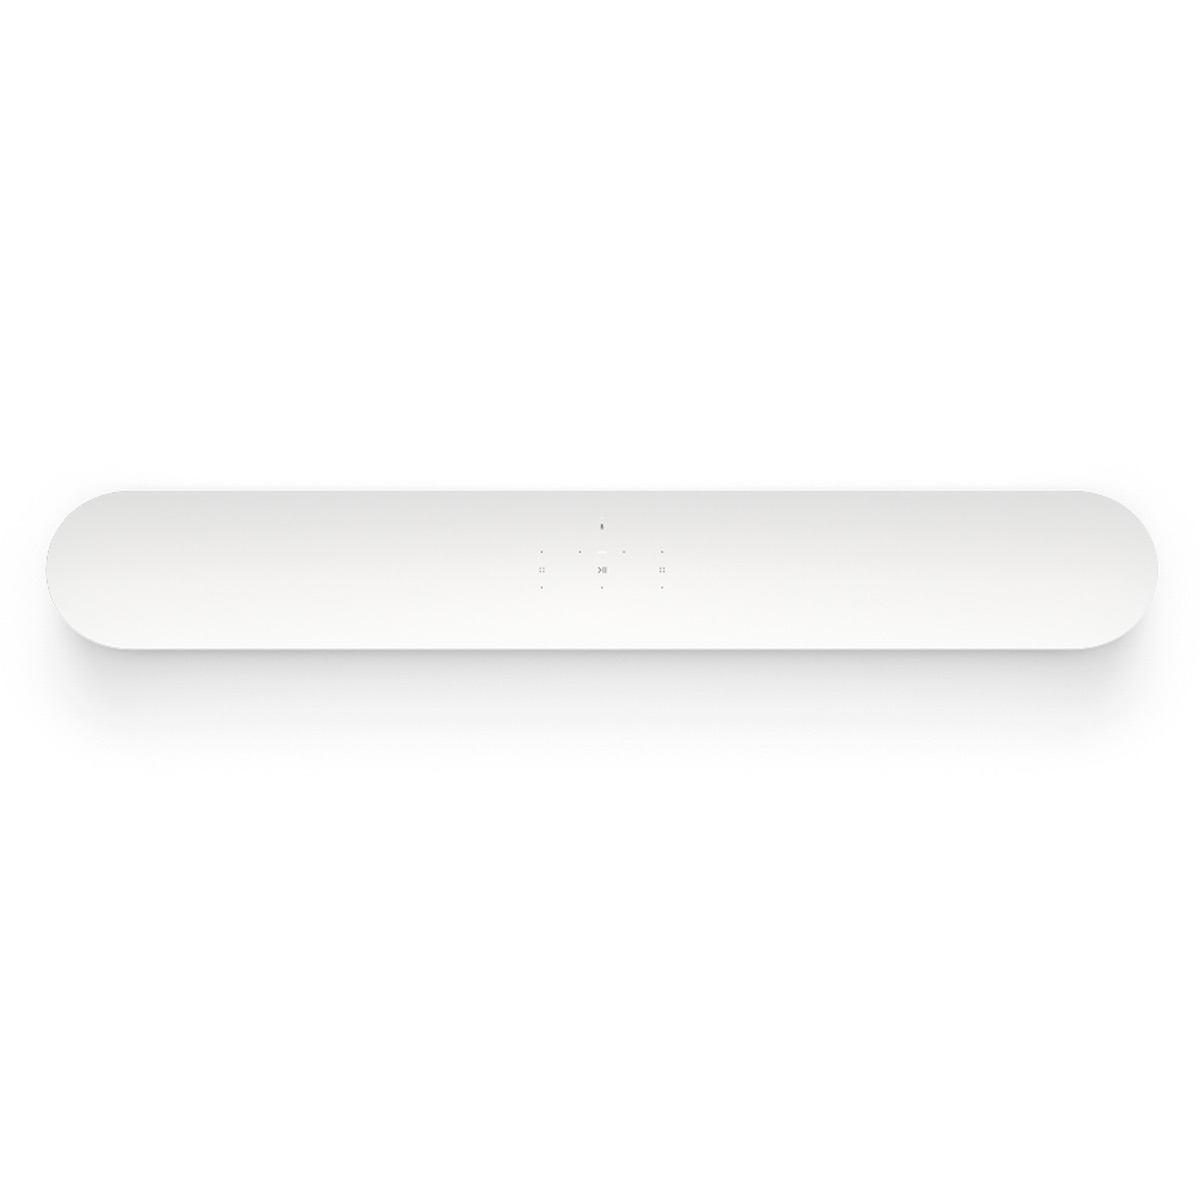 Sonos-Beam-Compact-Smart-Sound-Bar-with-Voice-Control thumbnail 27